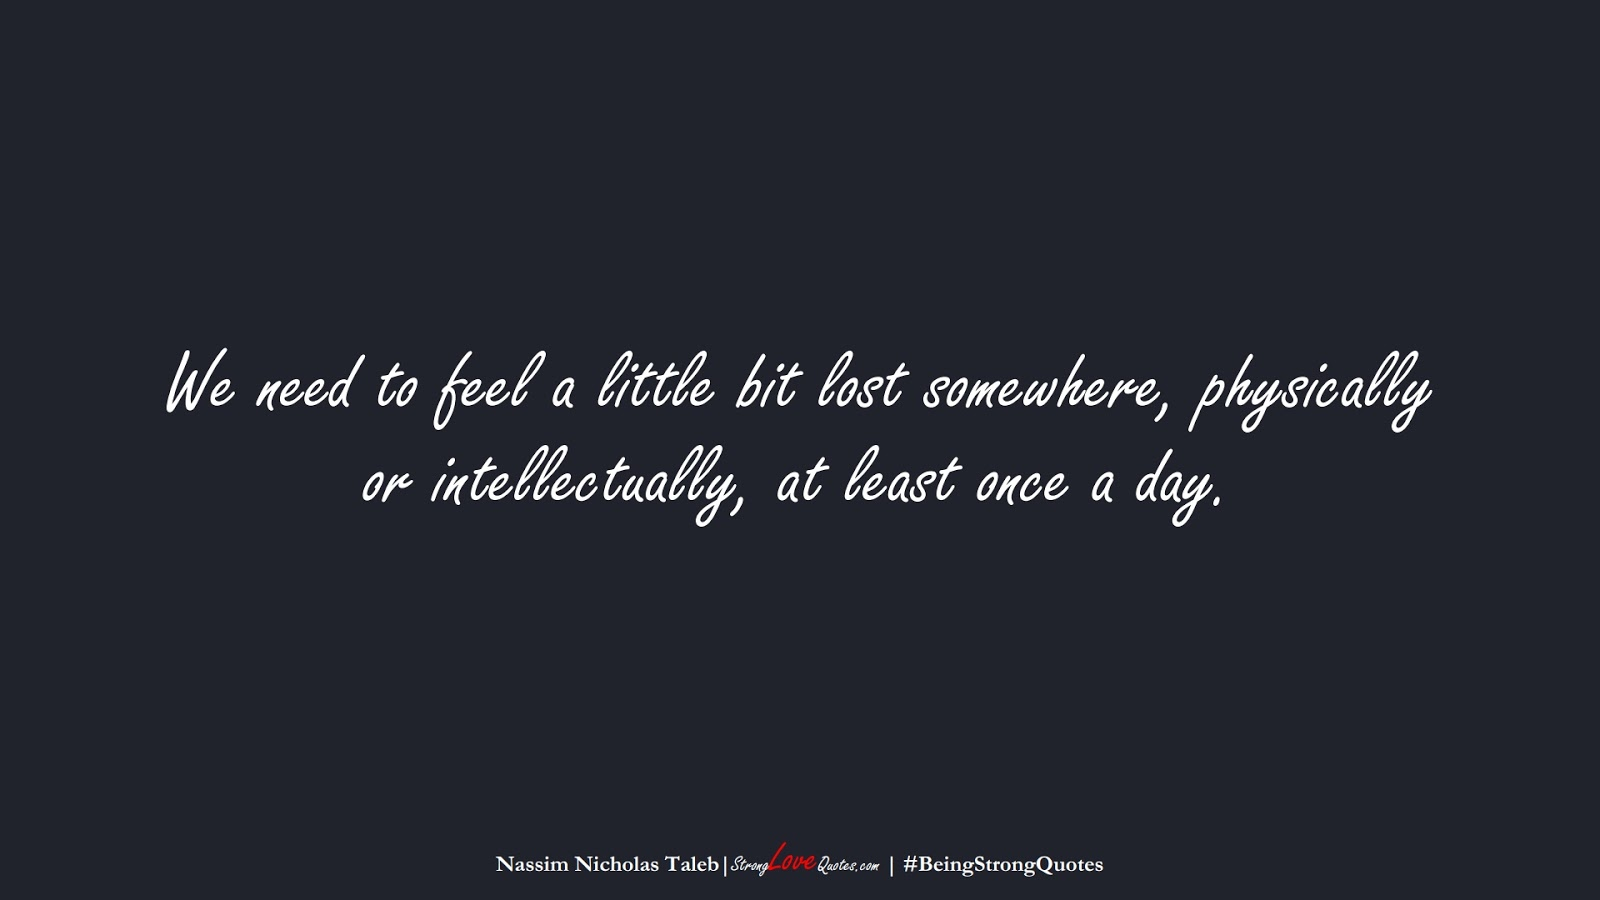 We need to feel a little bit lost somewhere, physically or intellectually, at least once a day. (Nassim Nicholas Taleb);  #BeingStrongQuotes